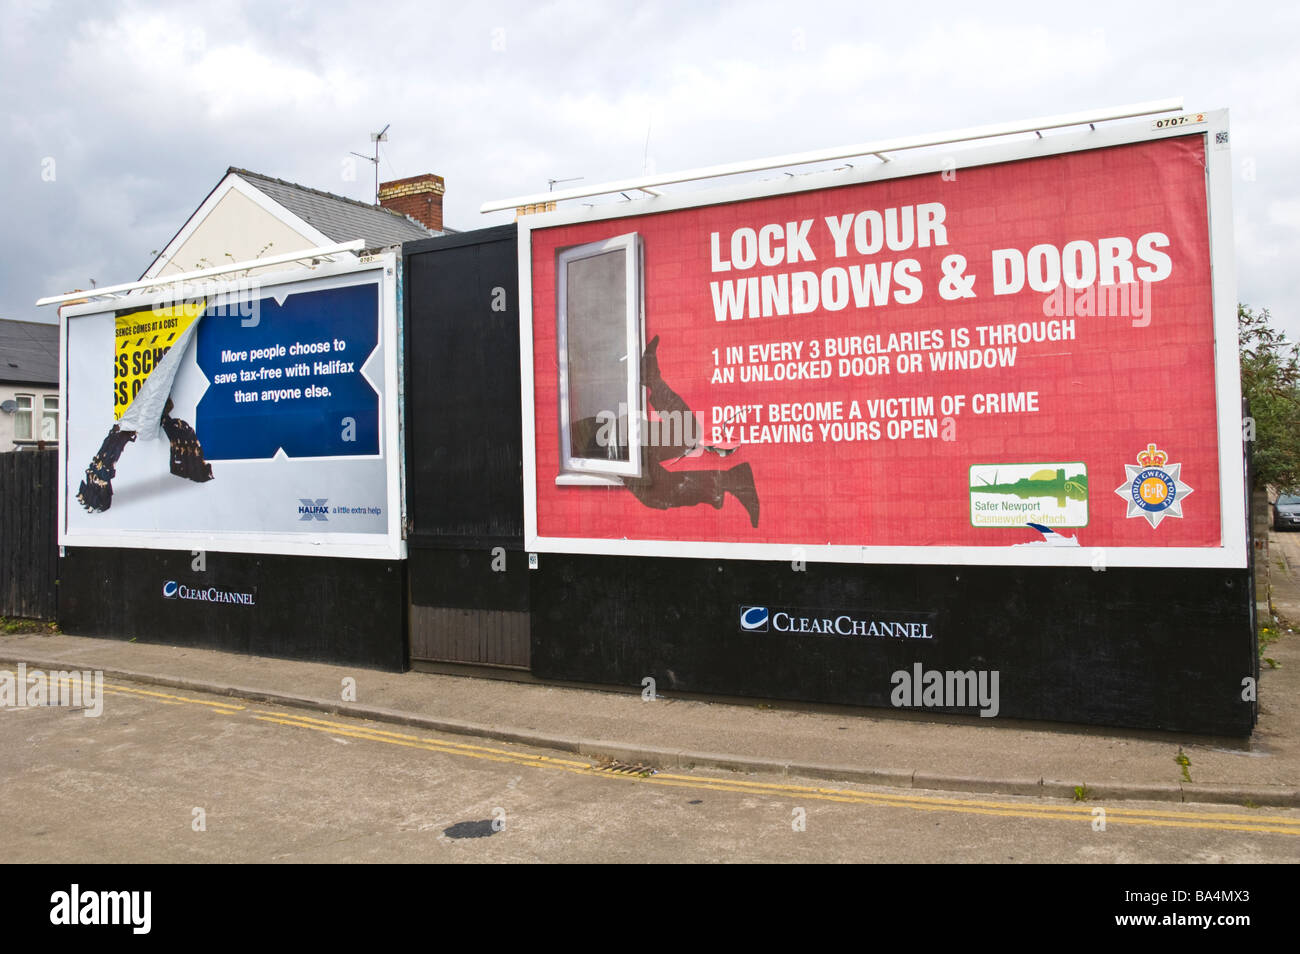 ClearChannel advertising billboards for Halifax bank and crime prevention imitative on hoardings in Newport South - Stock Image